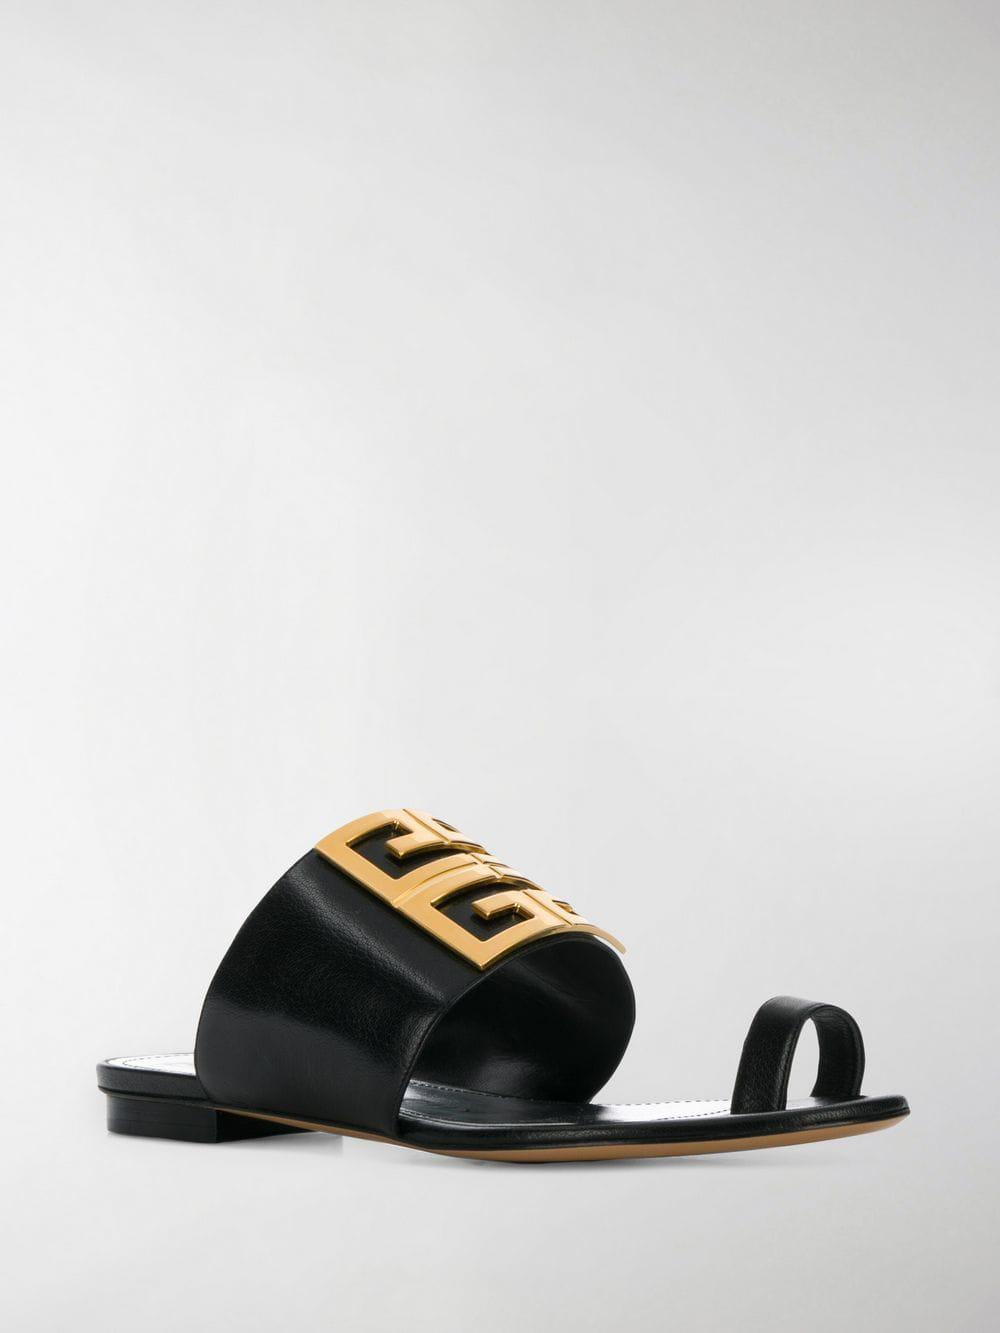 cc264433a88e Lyst - Givenchy Black 4g Flat Leather Buckle Sandals in Black